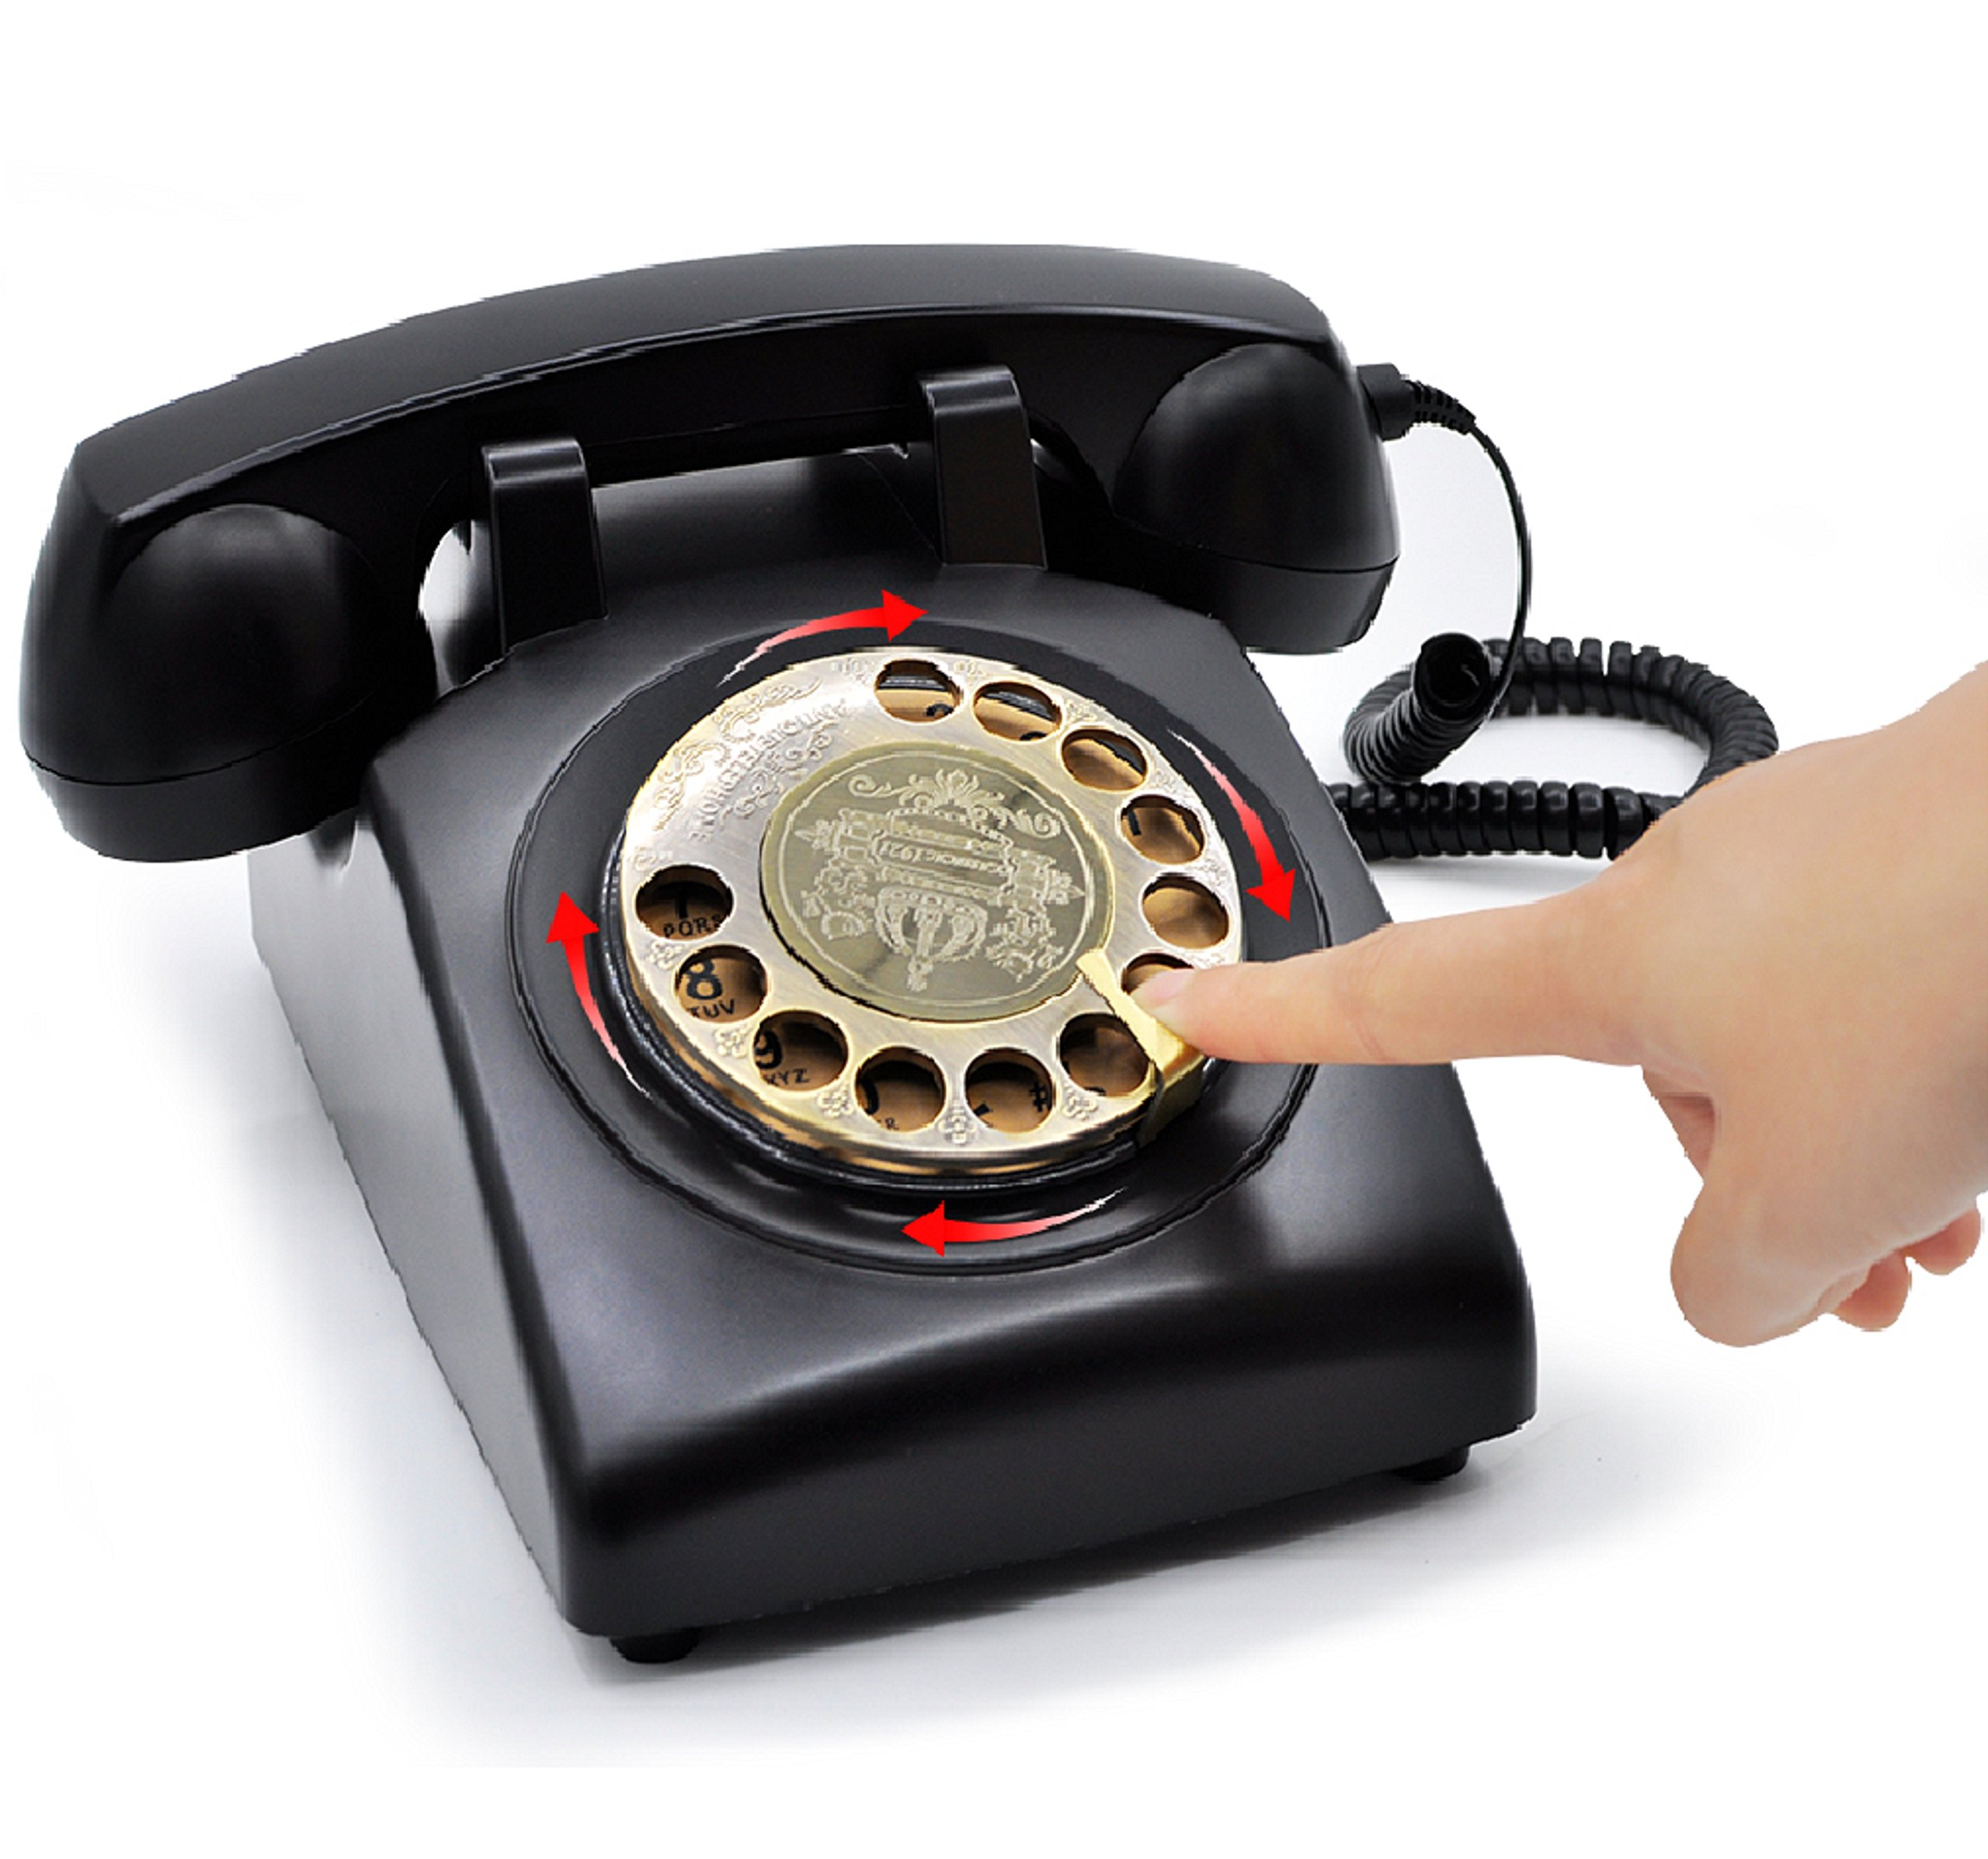 1960's Style Retro Vintage Antique Style Rotary Dial Desk Telephone,Old Fashioned Classic Corded Telephone Landline for Home and Office Decor (Vintage Black/No hands-free function)